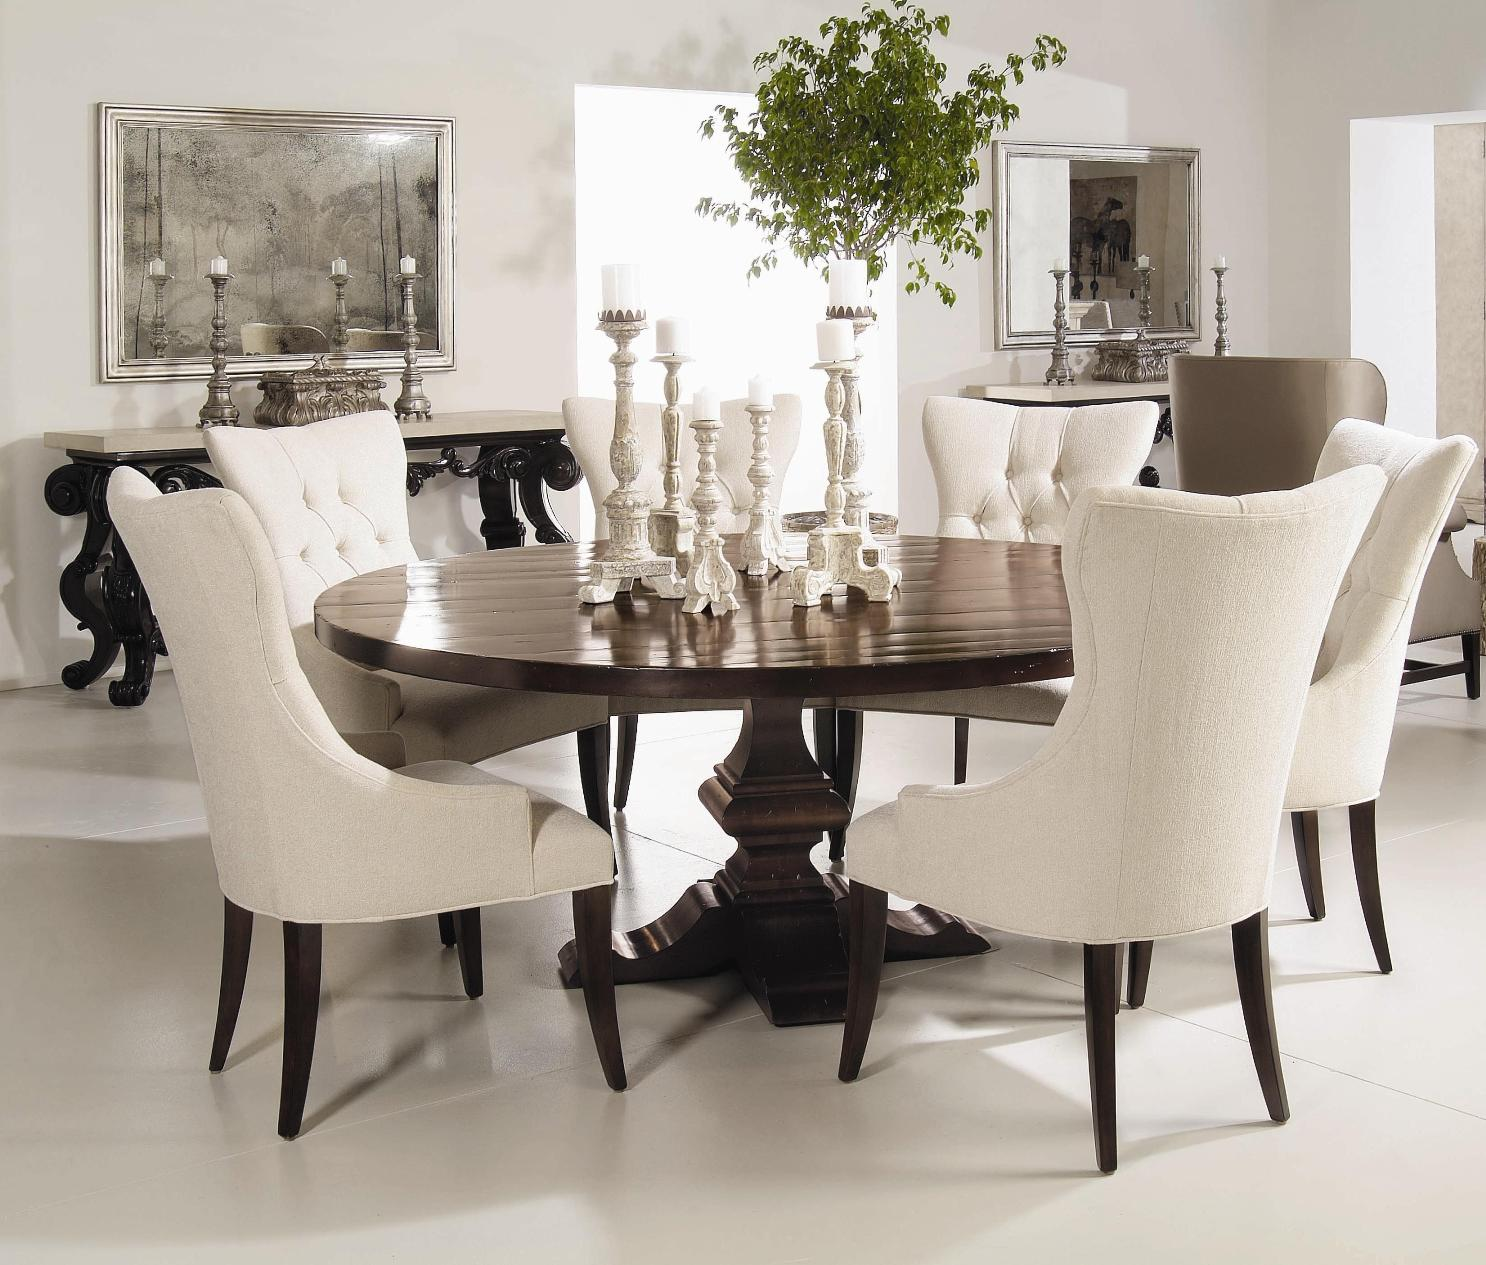 Invest in pedestal dining room table for a magnificent for Dining room table for 4